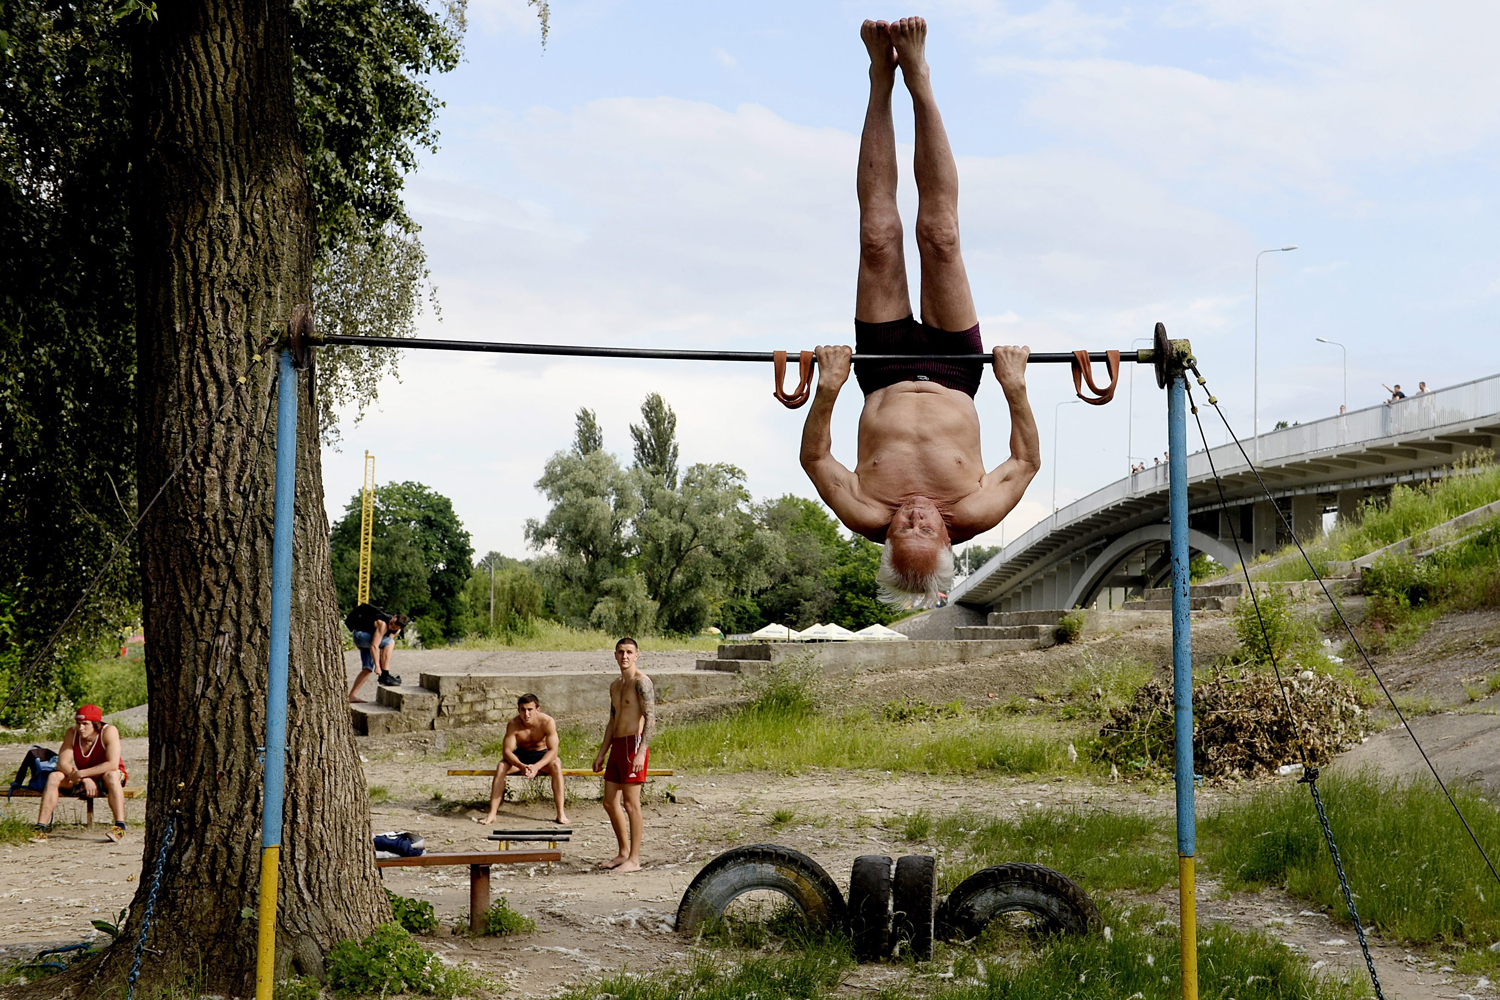 May 29, 2014. An elderly Ukrainian man exercises at the Kachalka outdoor gym on the banks of the river Dniper in Kiev, Ukraine,